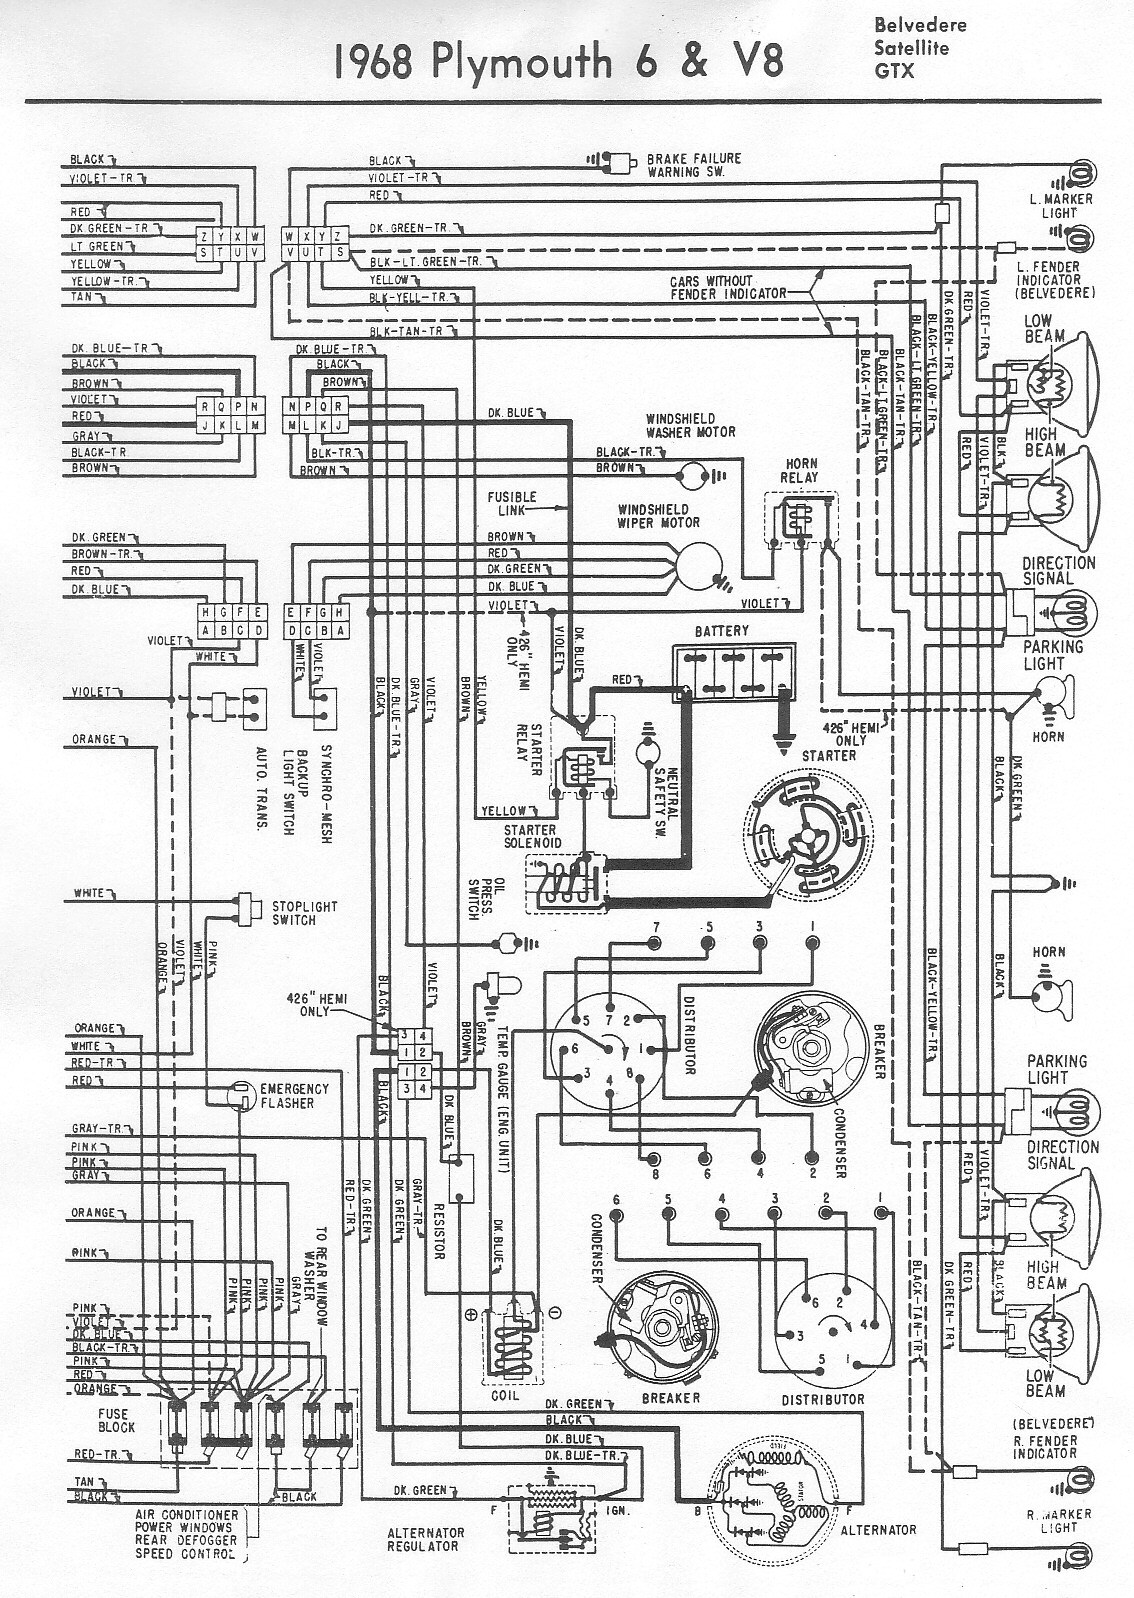 Astounding 1968 Plymouth Gtx Wiring Diagram Wiring Diagram Data Schema Wiring Cloud Faunaidewilluminateatxorg